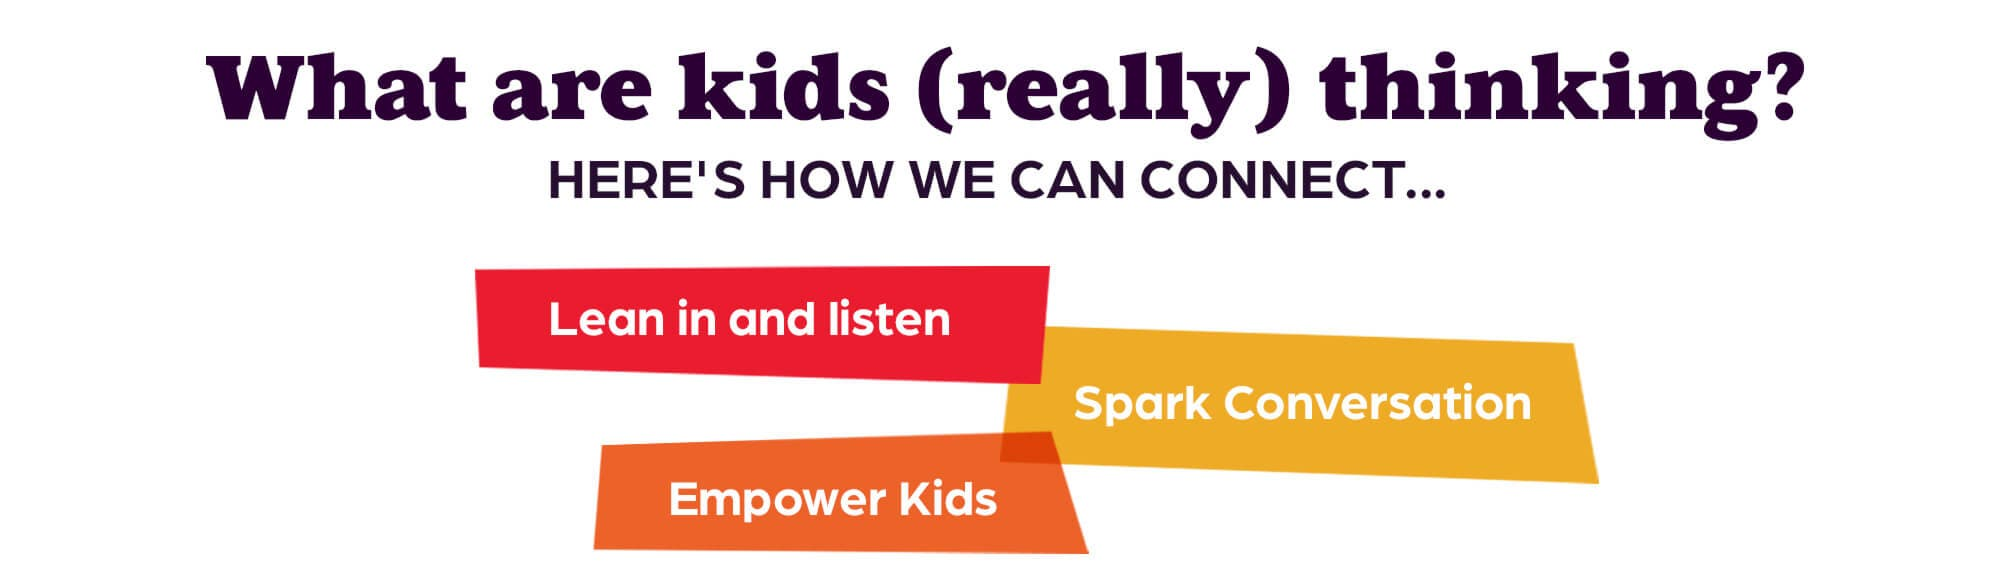 What are kids (really) thinking? Here's how we can connect ...